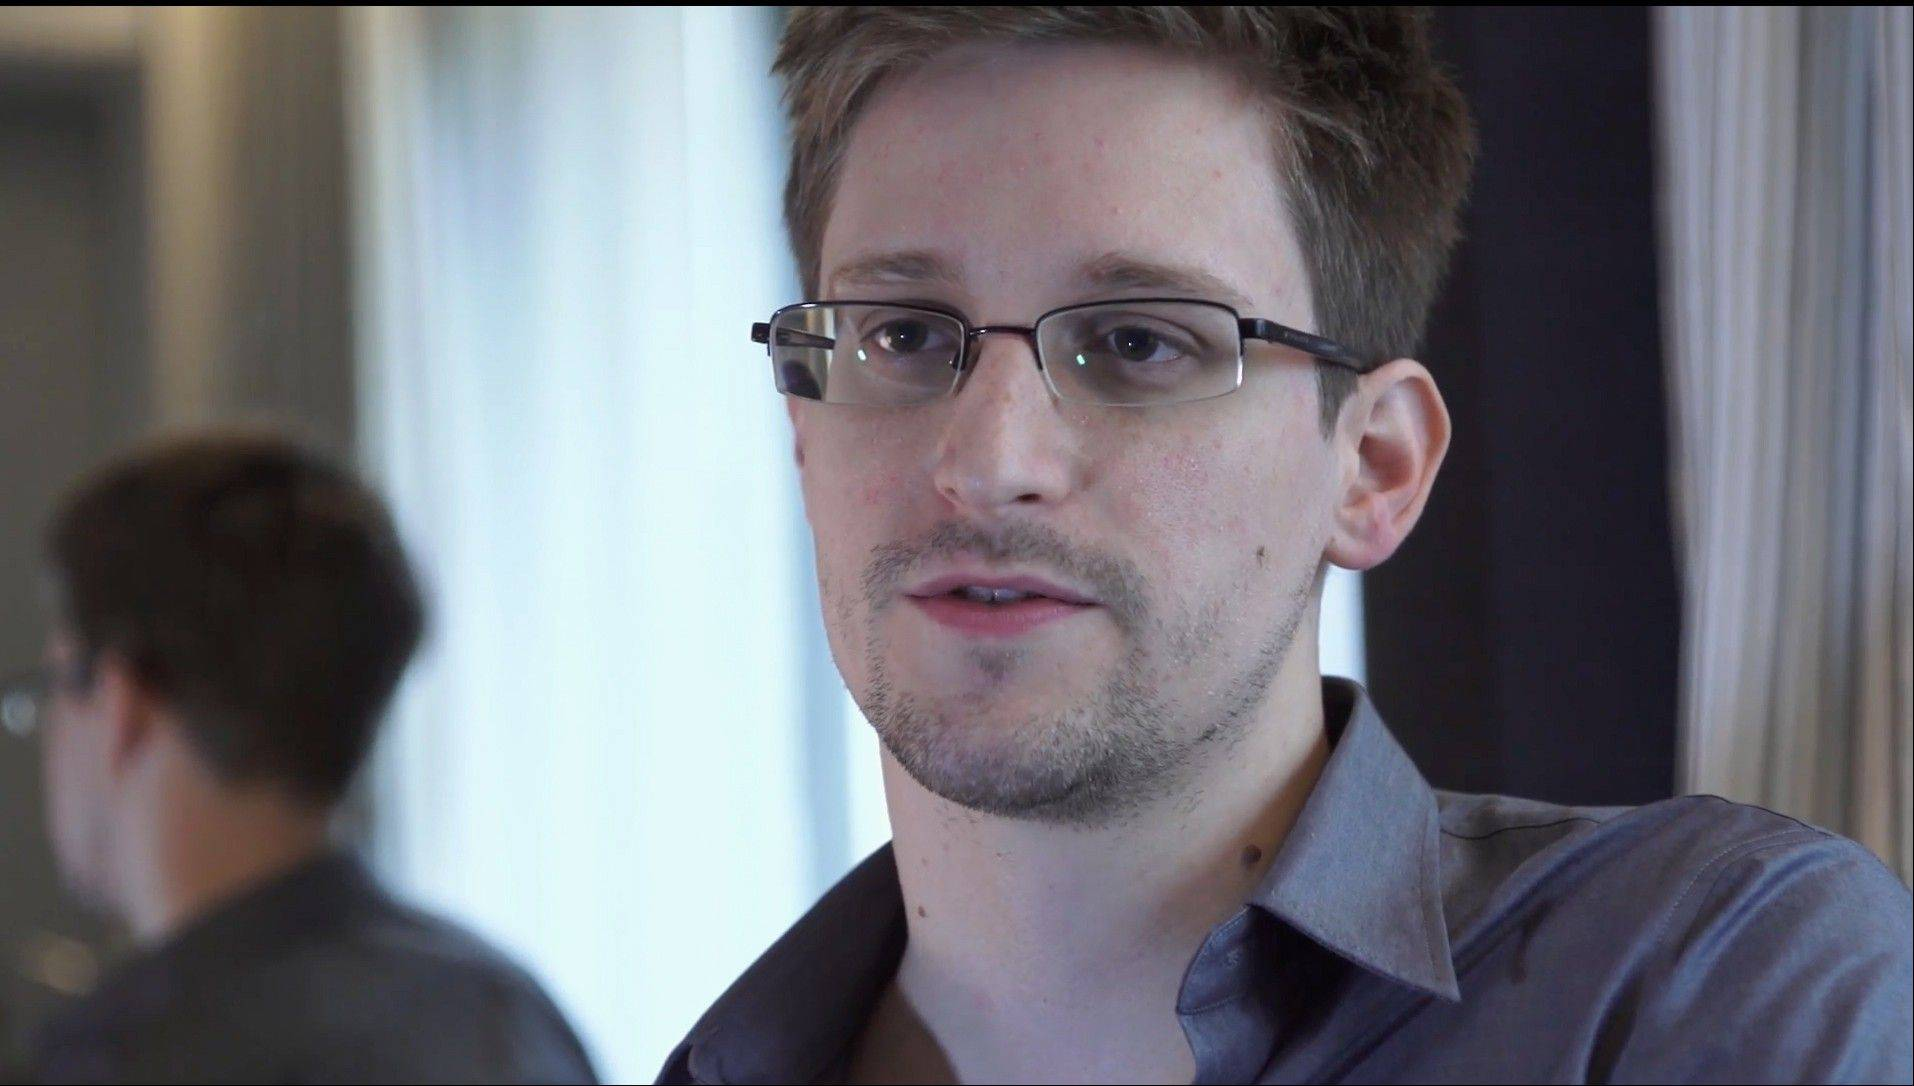 National Security Agency leaker Edward Snowden, in Hong Kong.